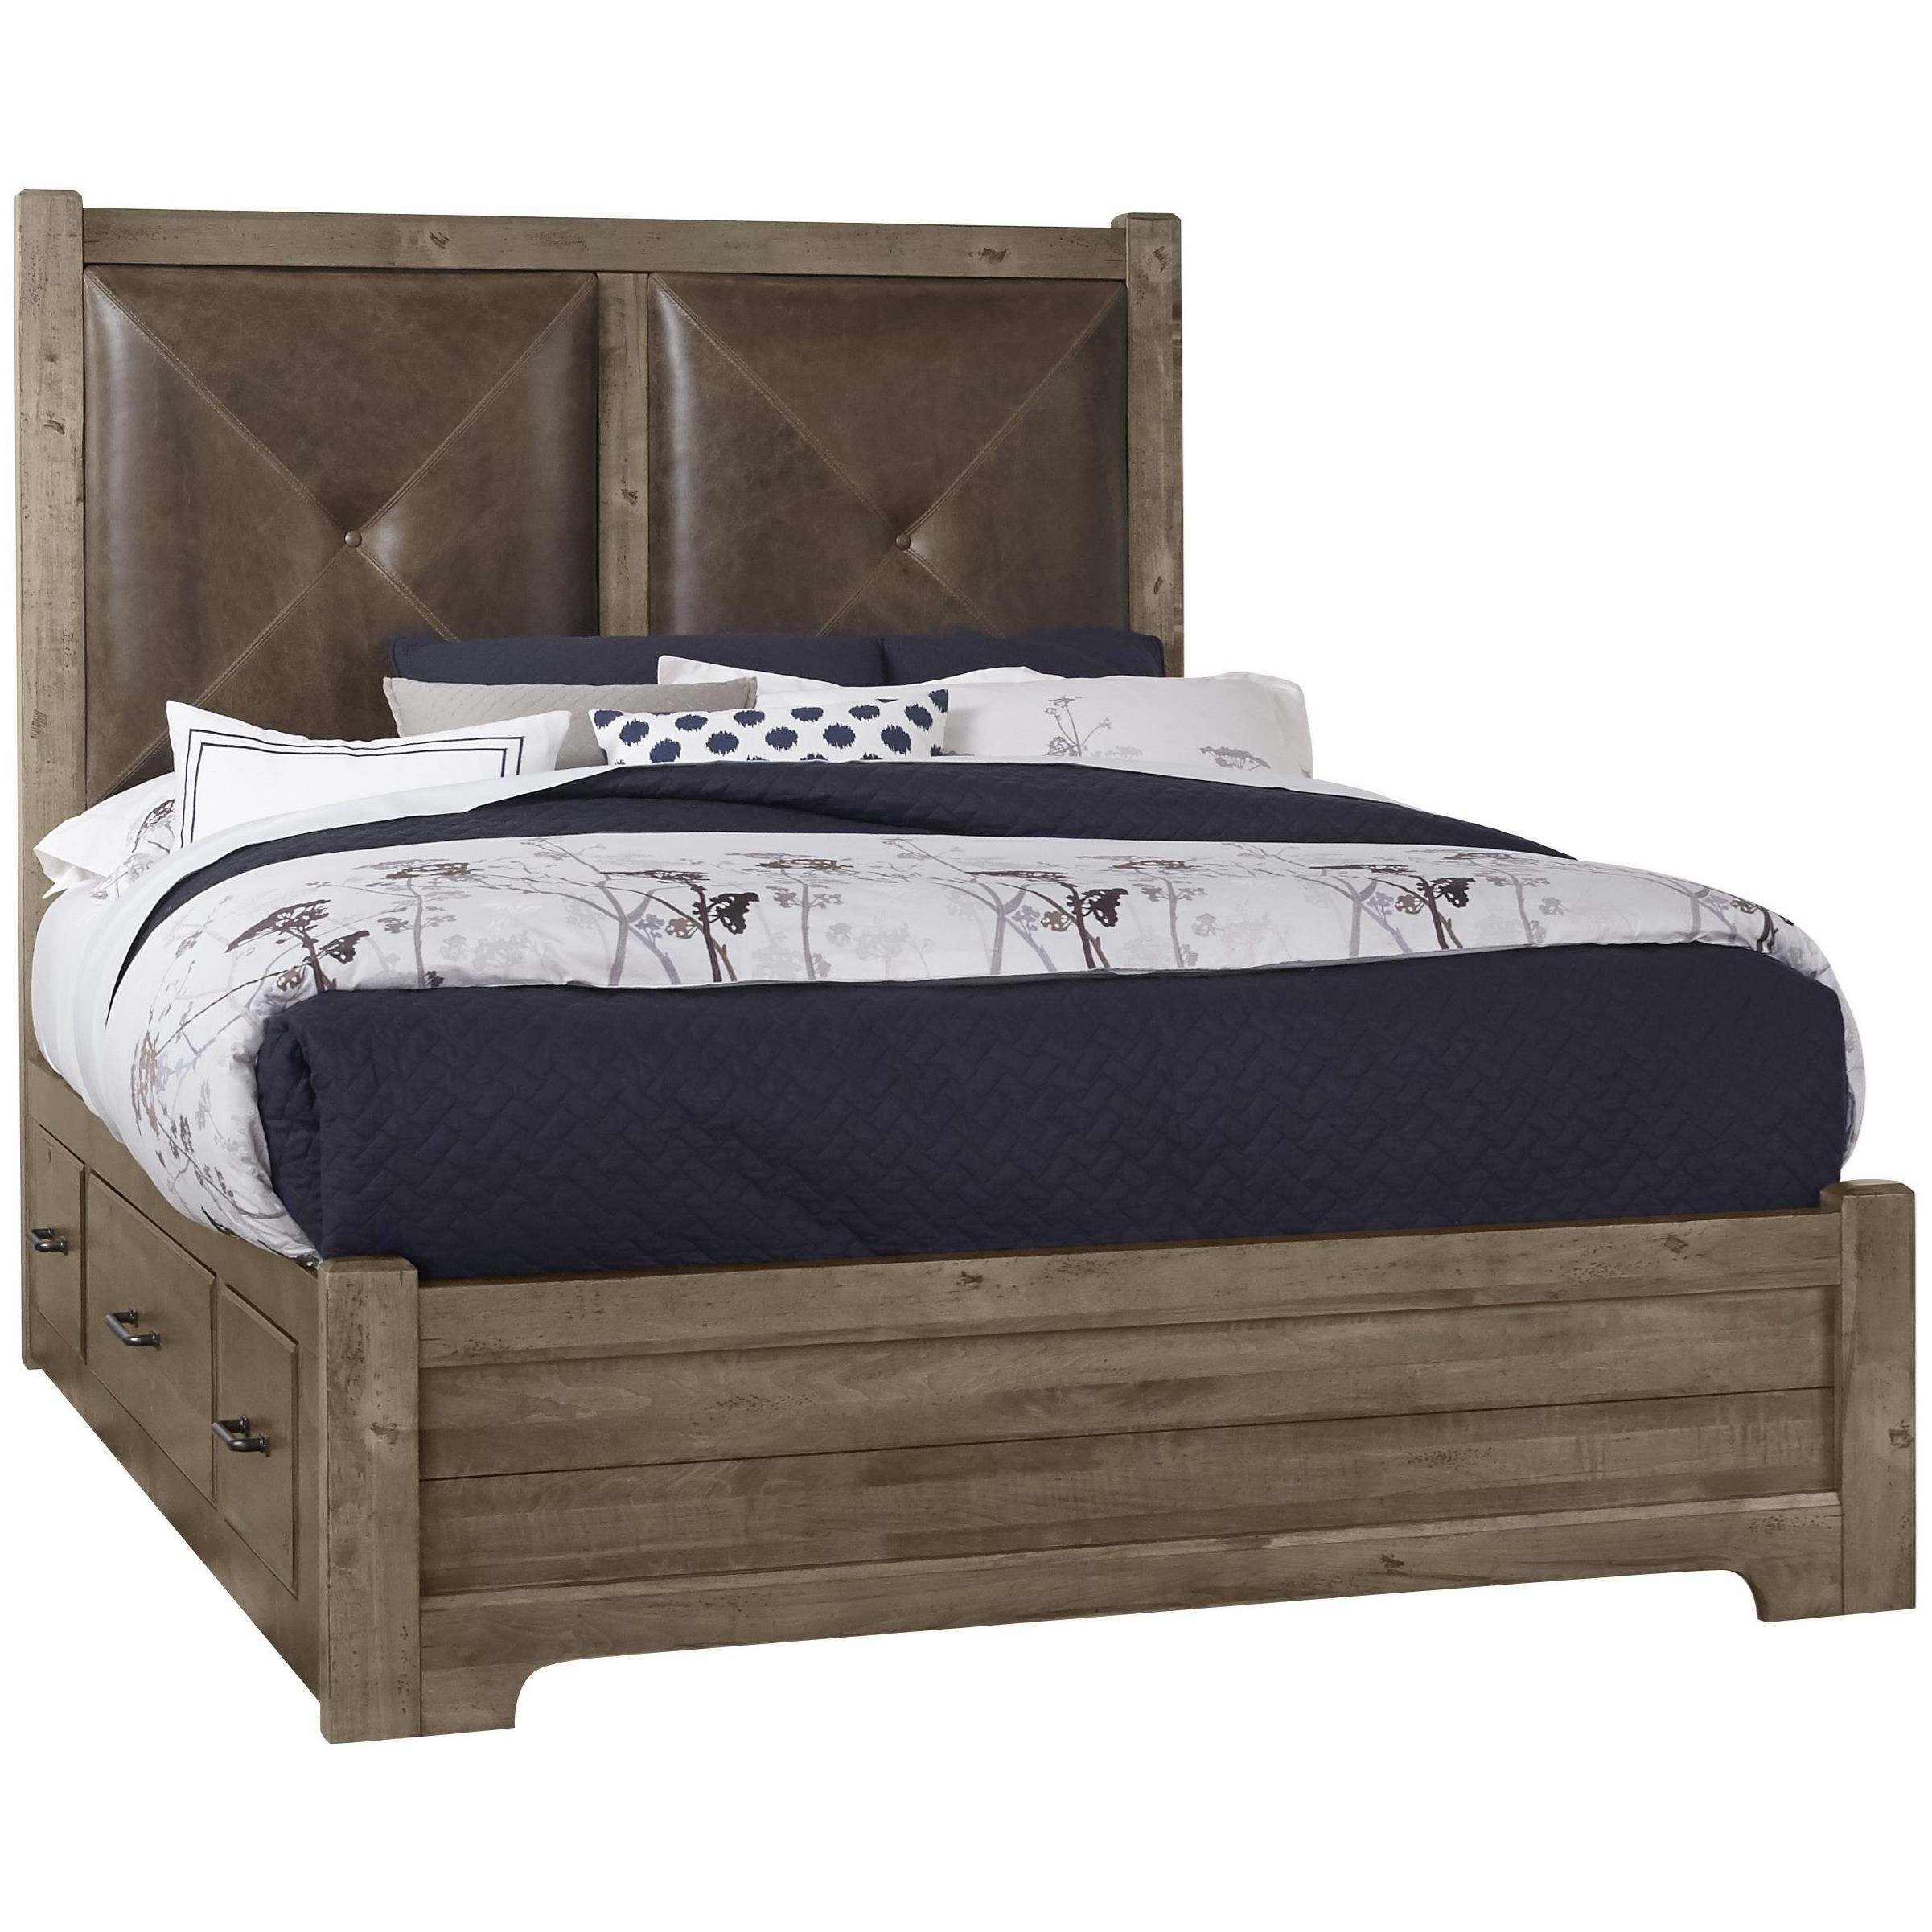 Post Cool Rustic Solid Wood Queen Leather Headboard Bed With Side Storage